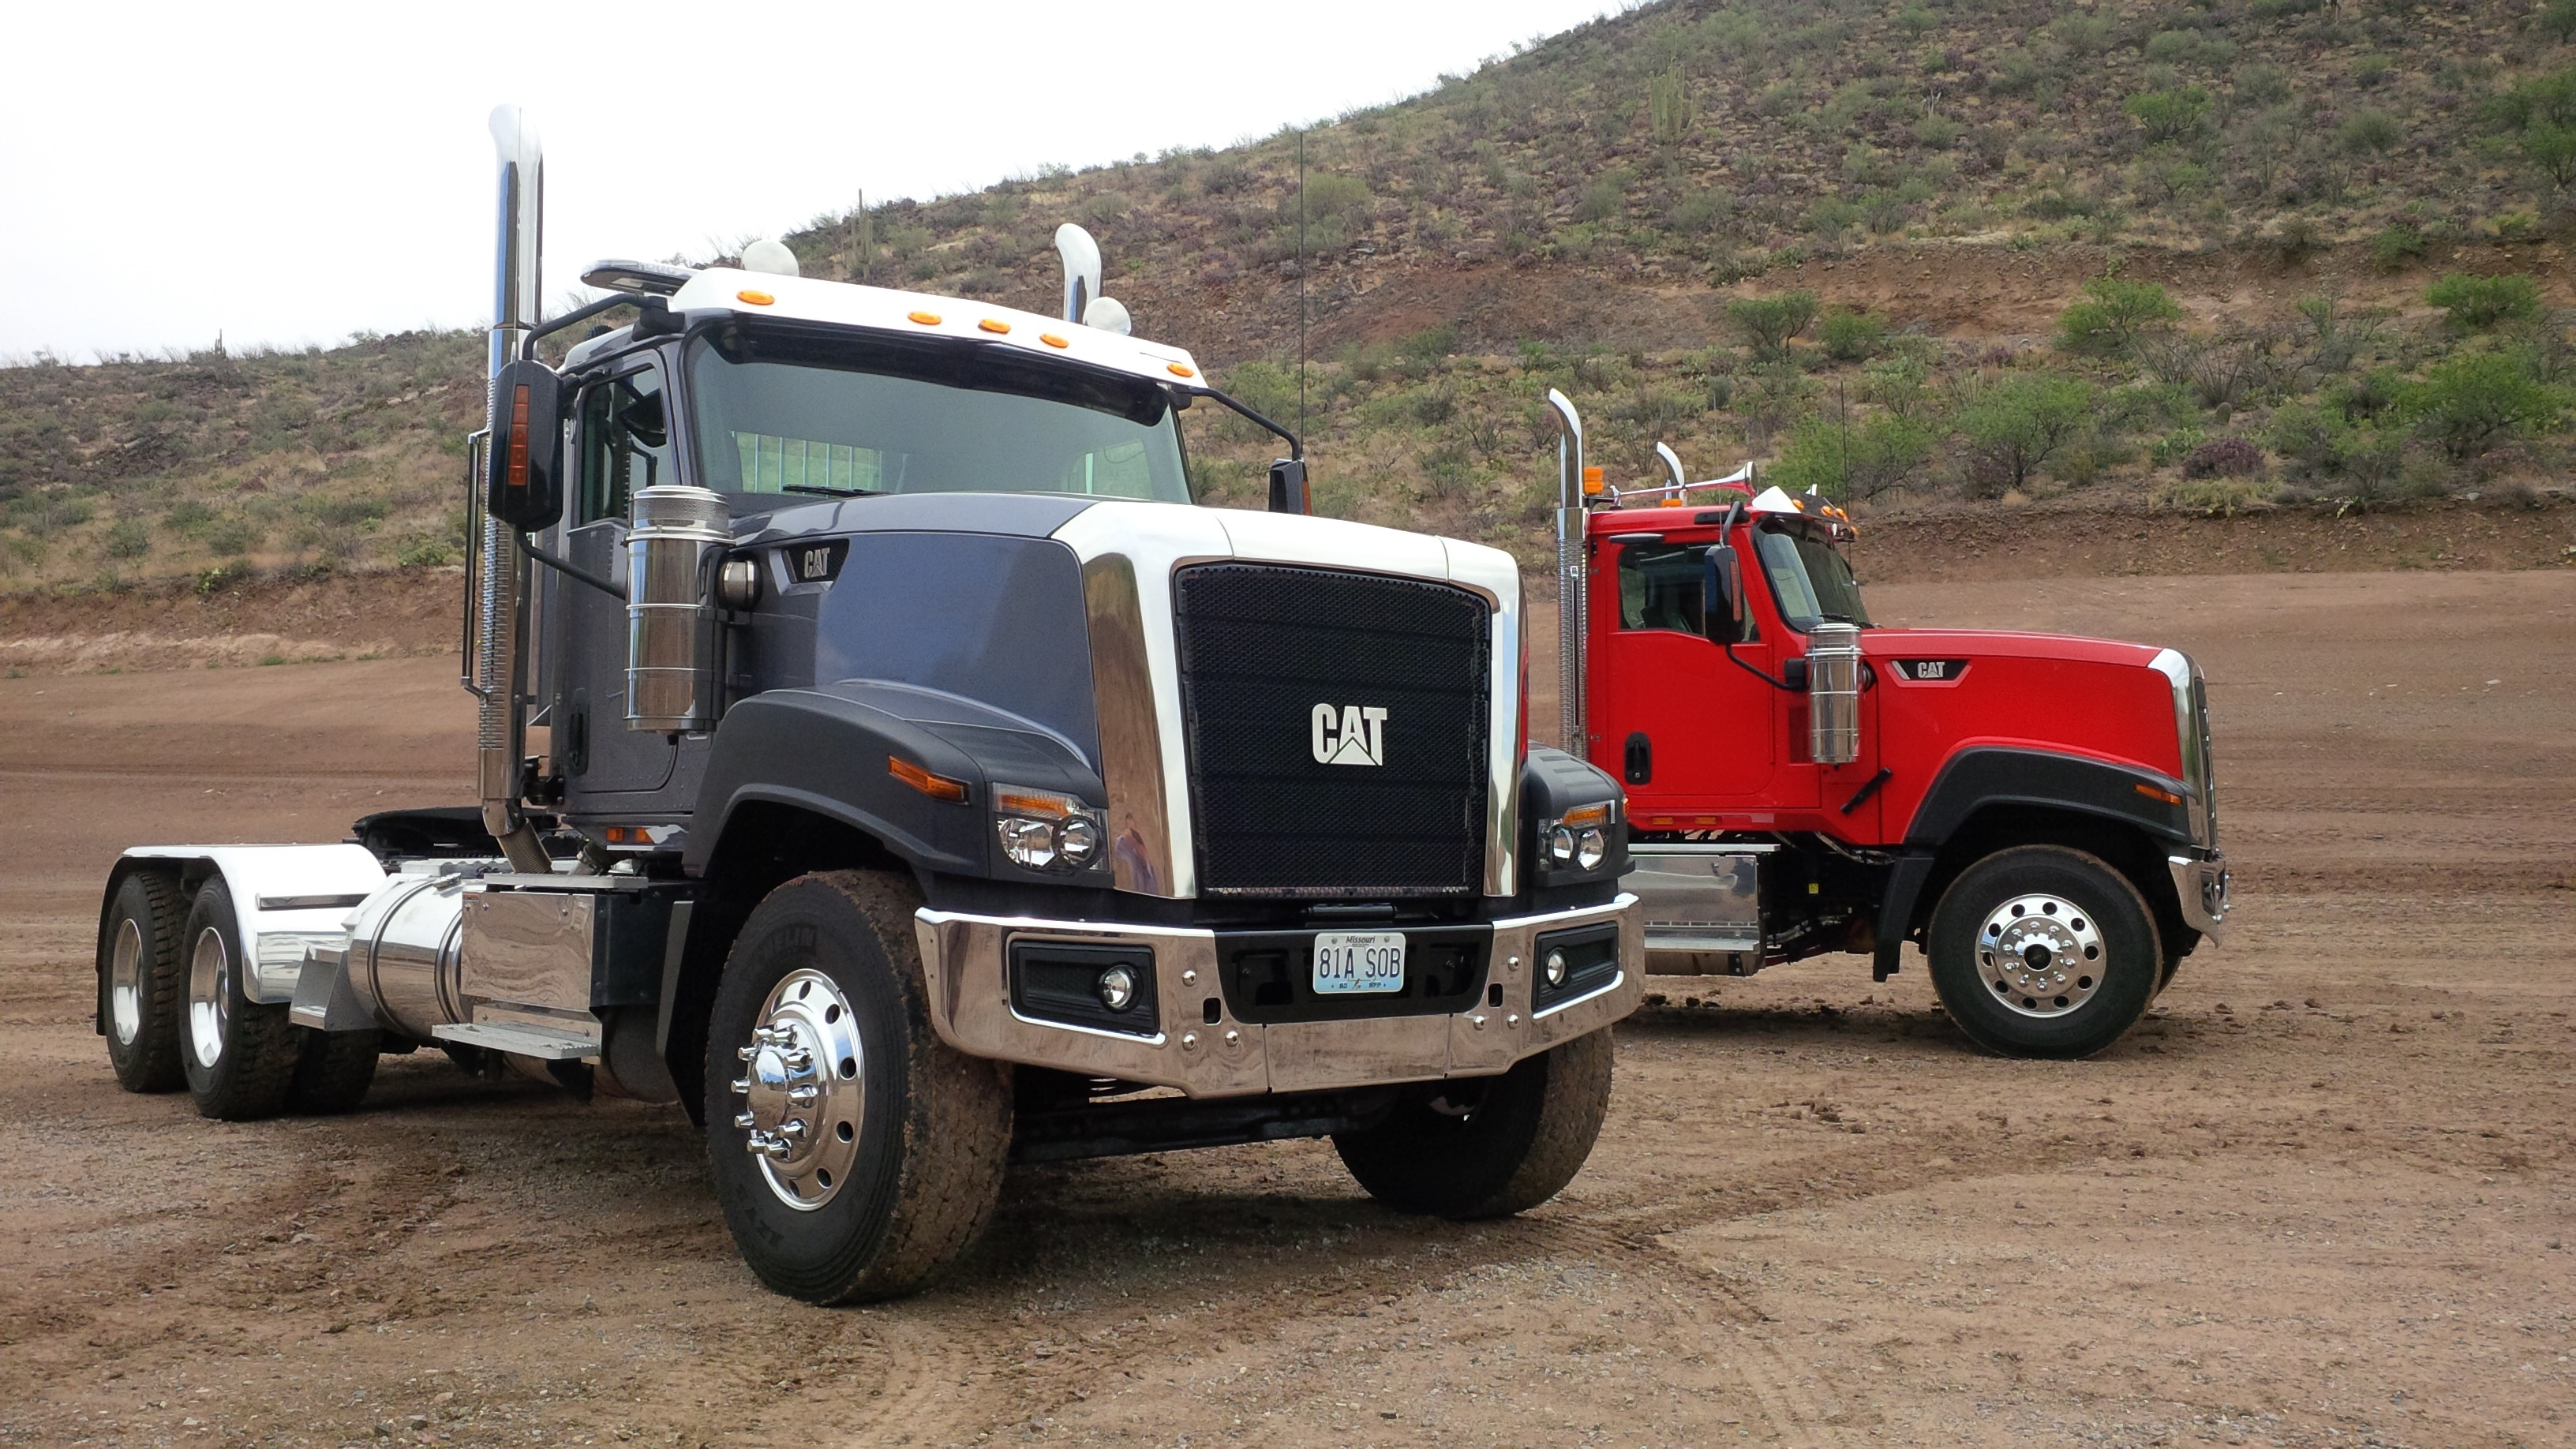 37350 2007 freightliner columbia furthermore Peterbilt besides The Best Modified Truck Vol72 moreover 7358224552 moreover Driving The Mack Granite With Mdrive Hd. on mack semi dump trucks